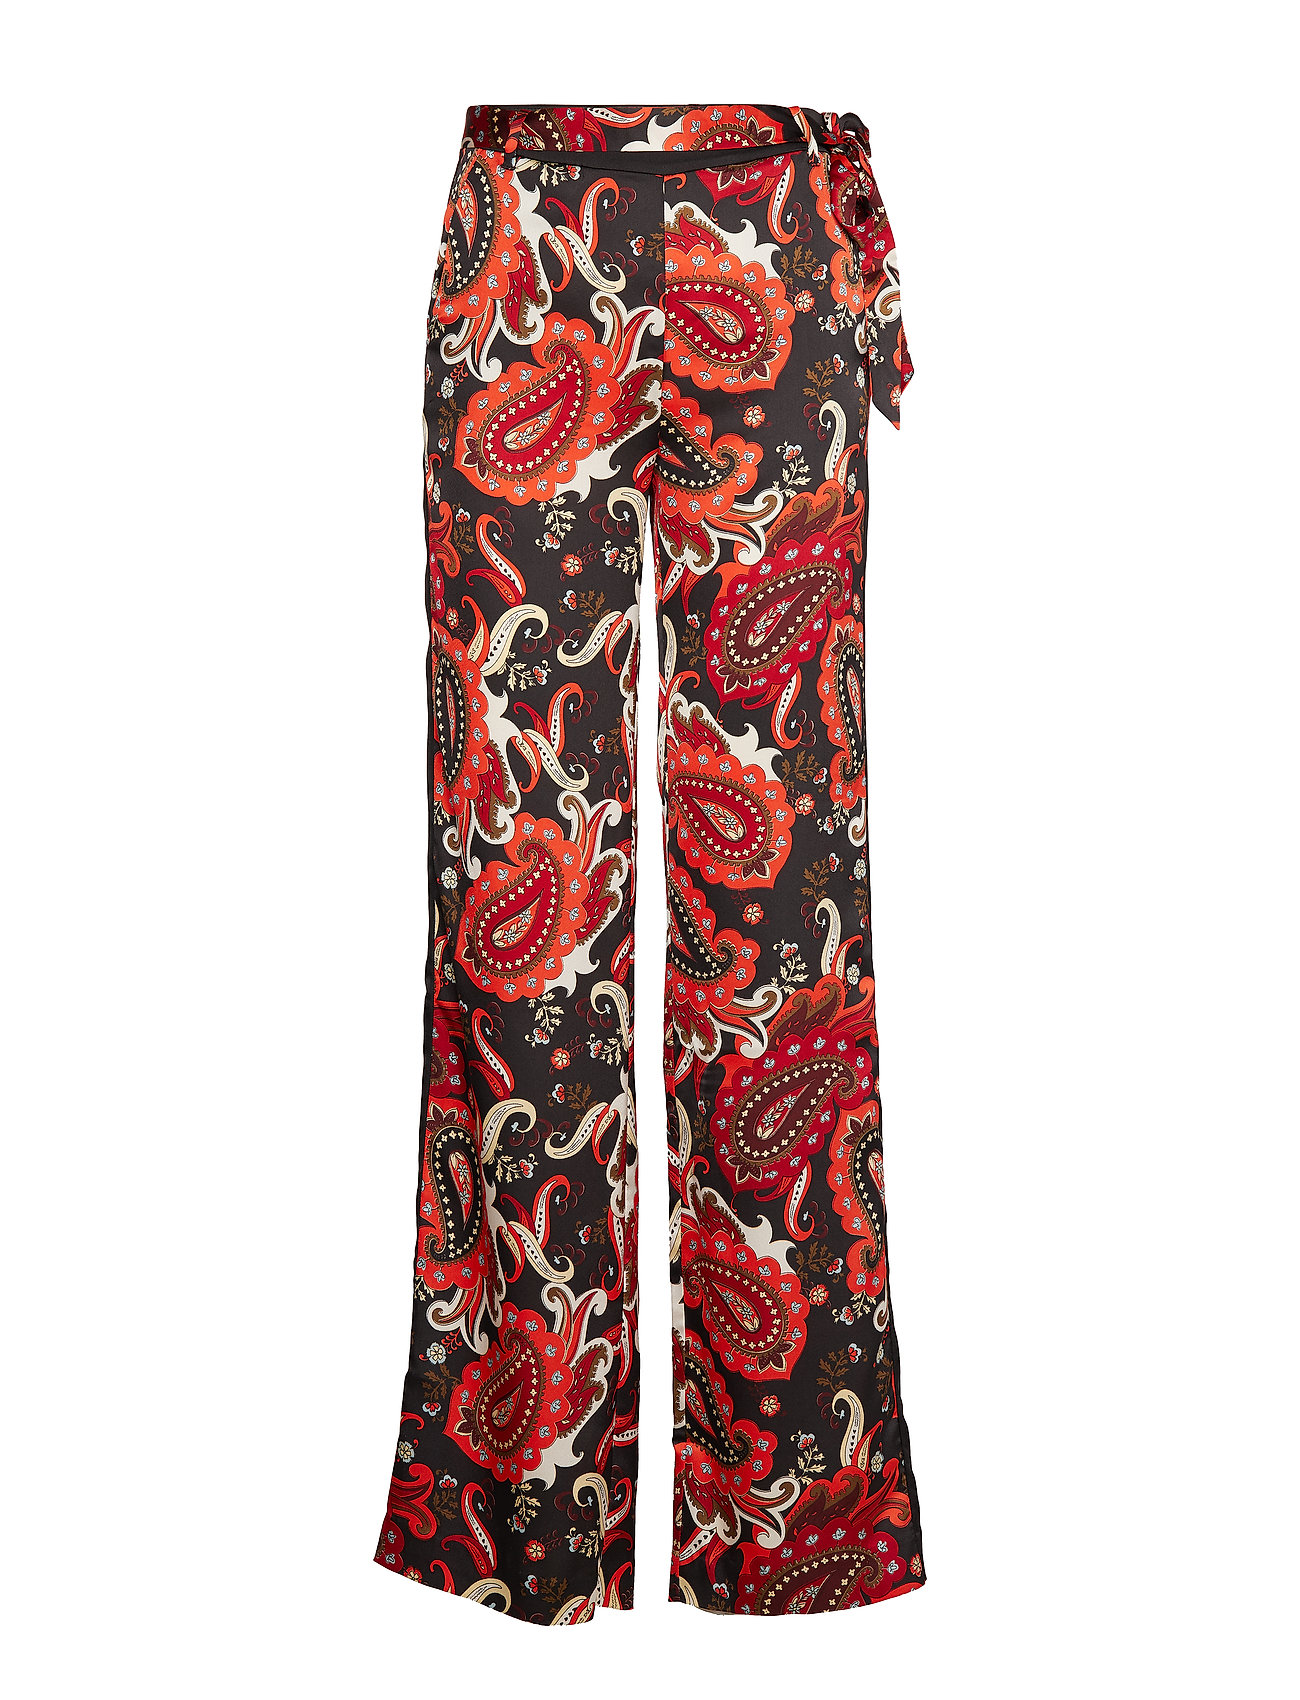 Marciano by GUESS PAISLEY FANTASY SOFT PANT - BLACK PAISELY FAN